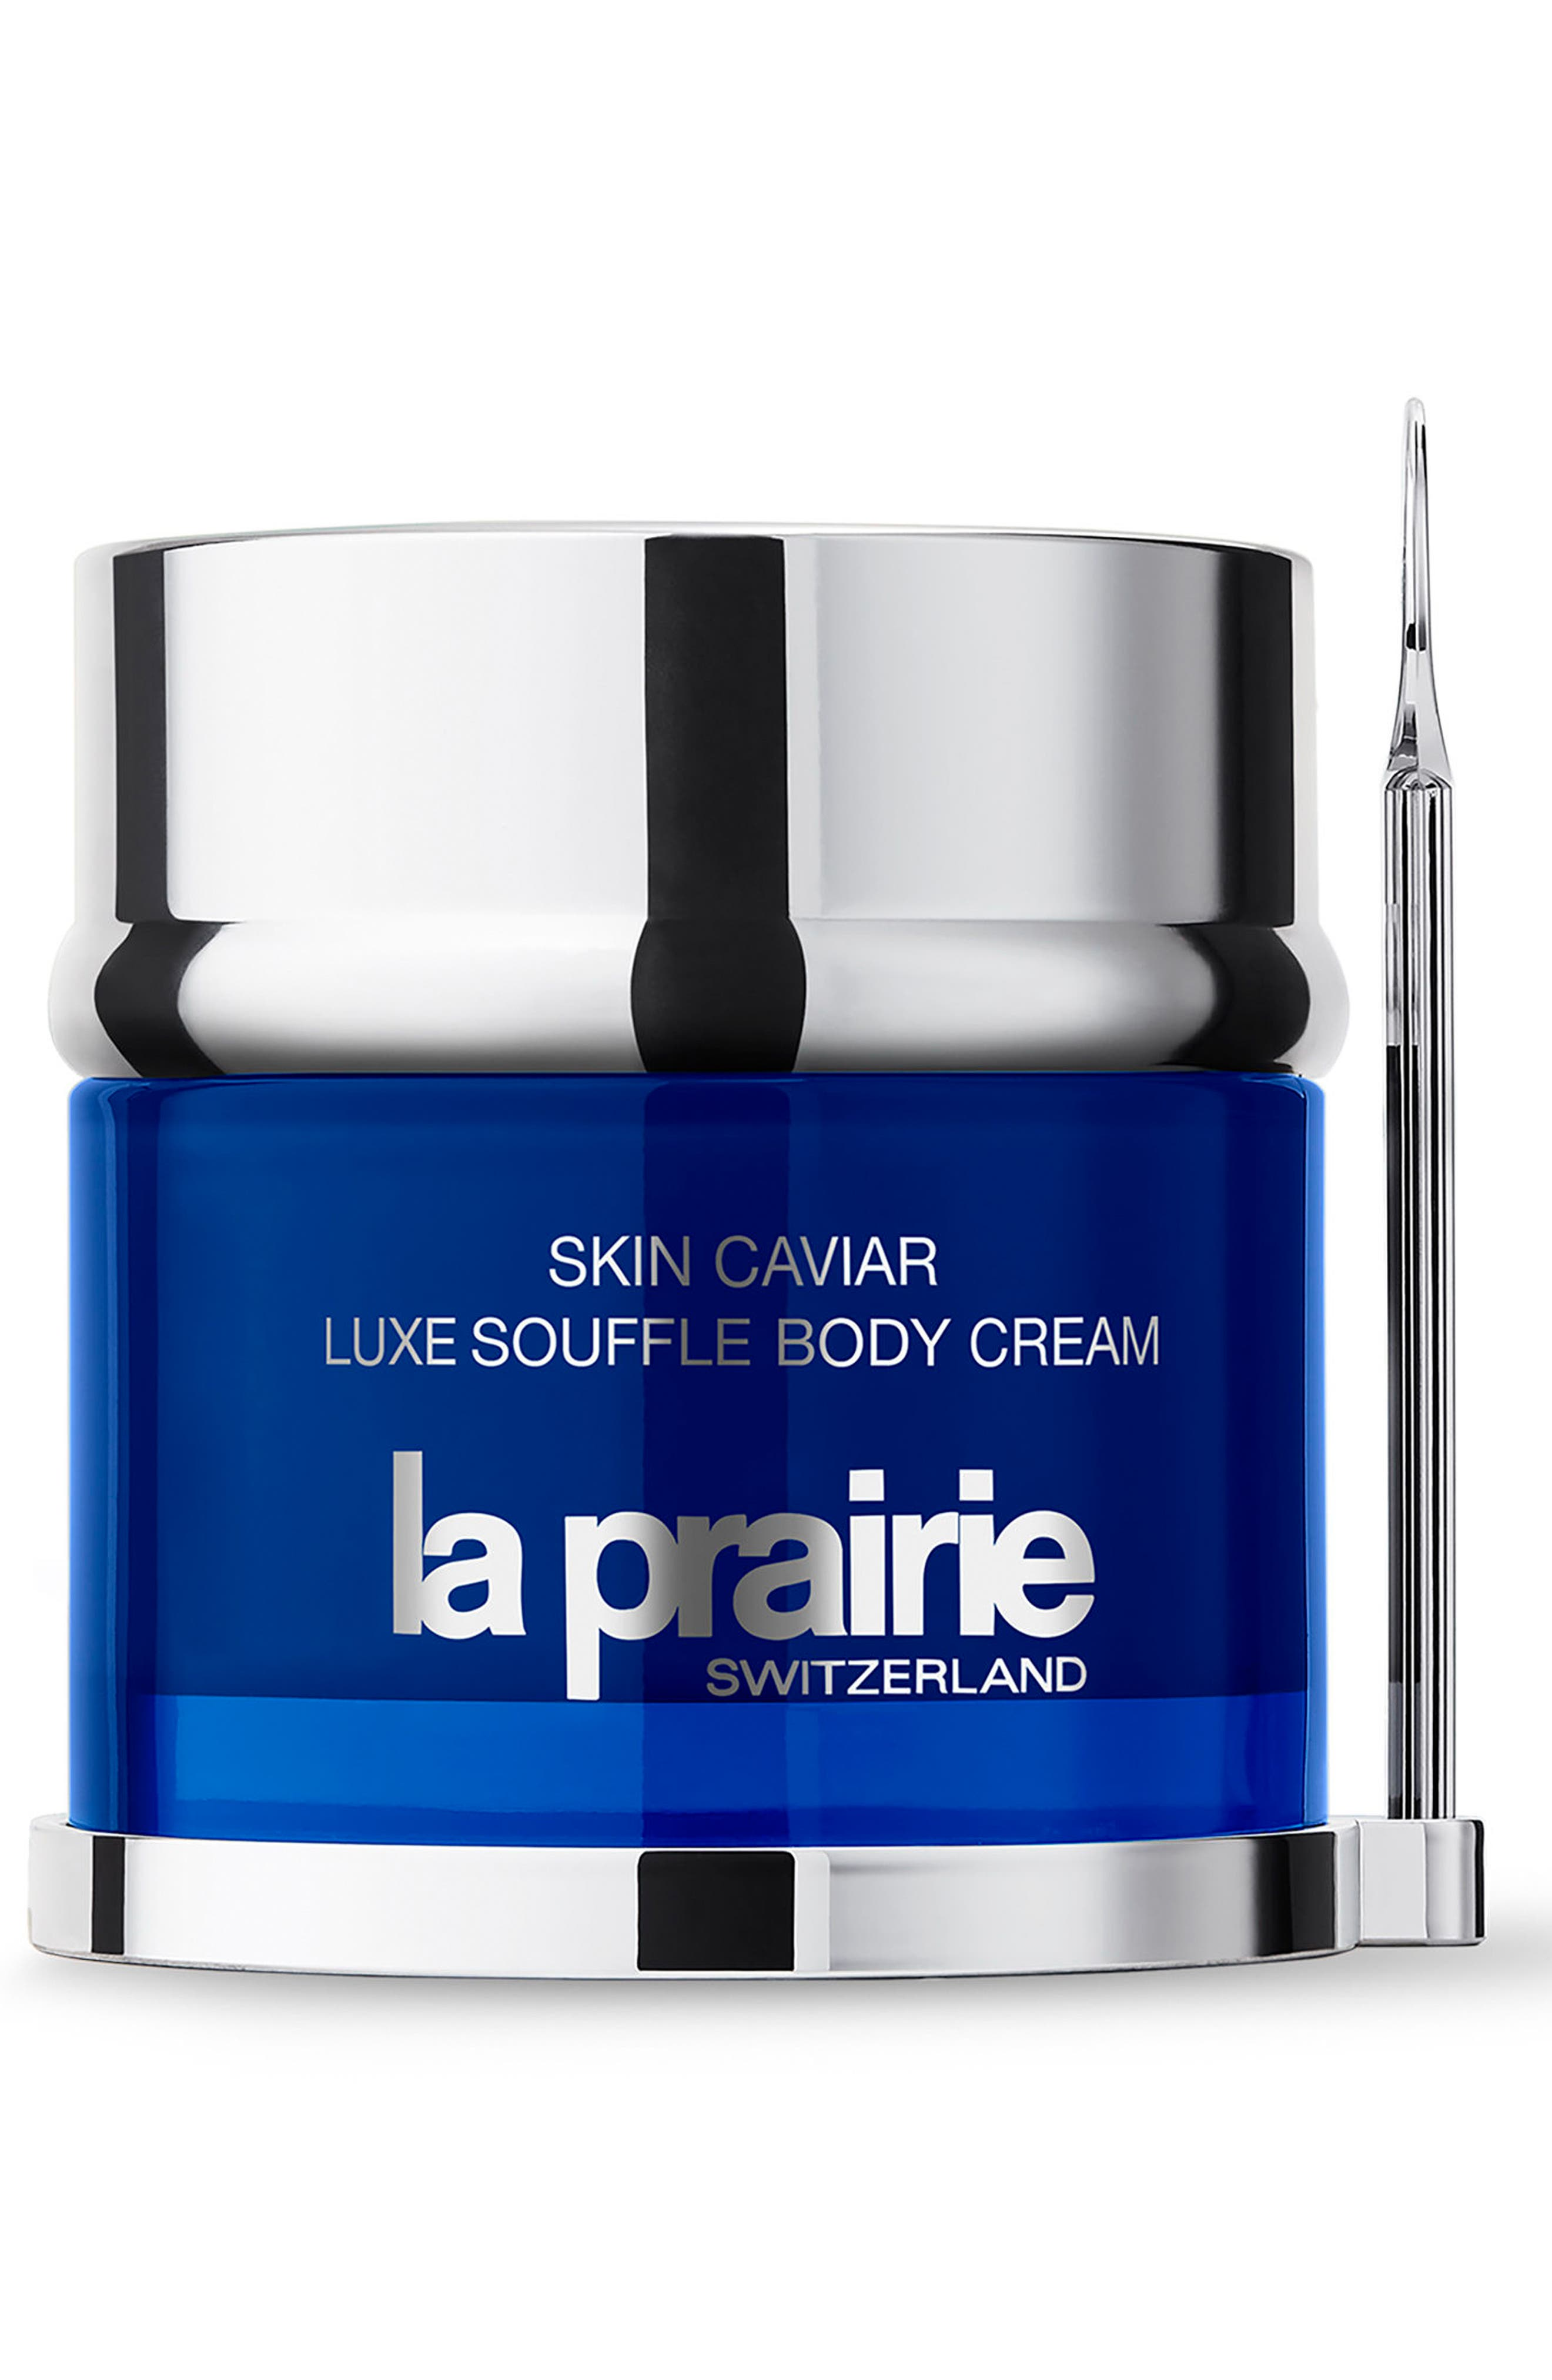 Skin Caviar Luxe Soufflé Body Cream,                         Main,                         color, No Color